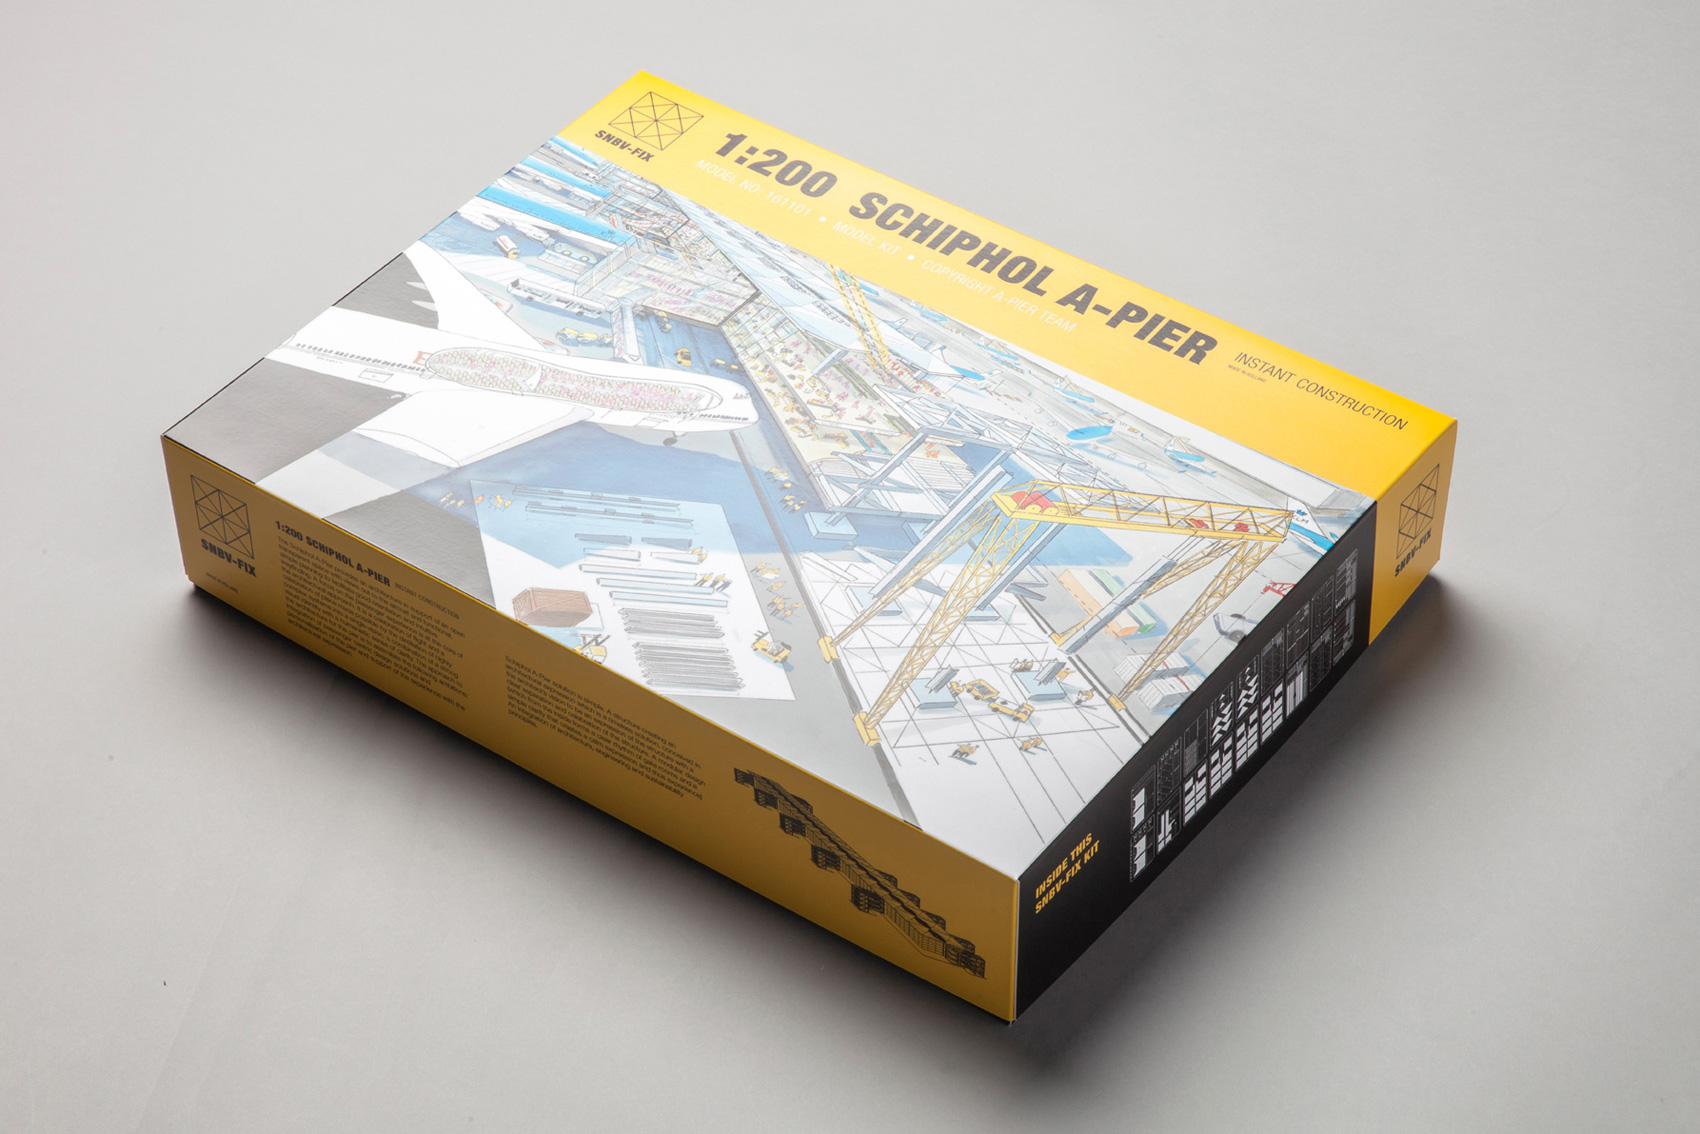 Bespoke 'Airfix style' packaging